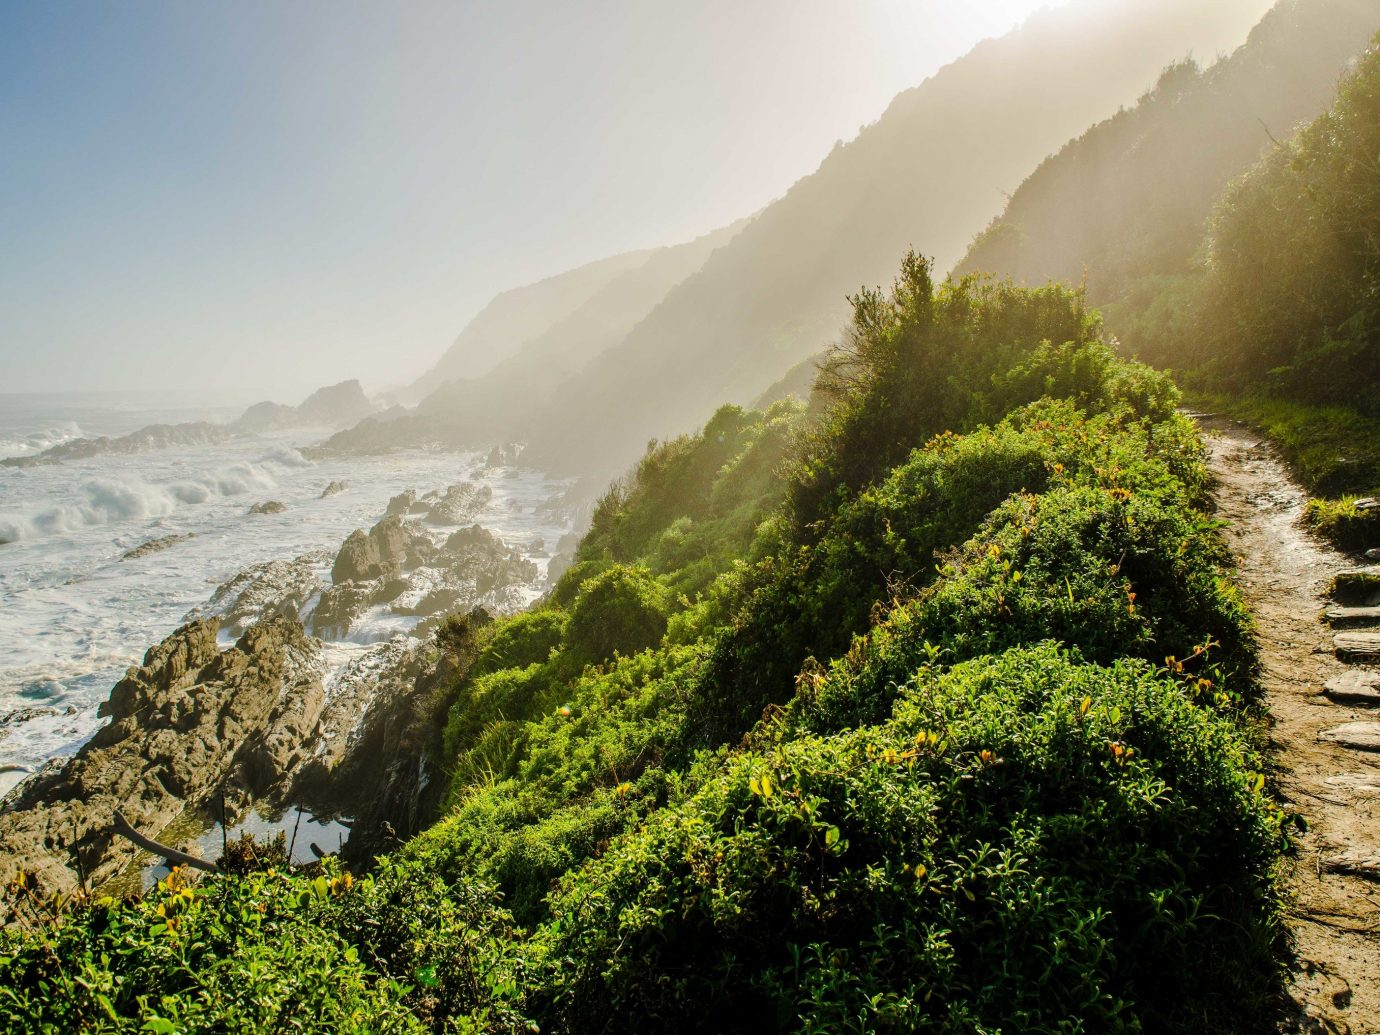 Nature vegetation water Coast sky morning Sea tree terrain hill station mountain sunlight cliff landscape grass rock mount scenery hill bank mist plant